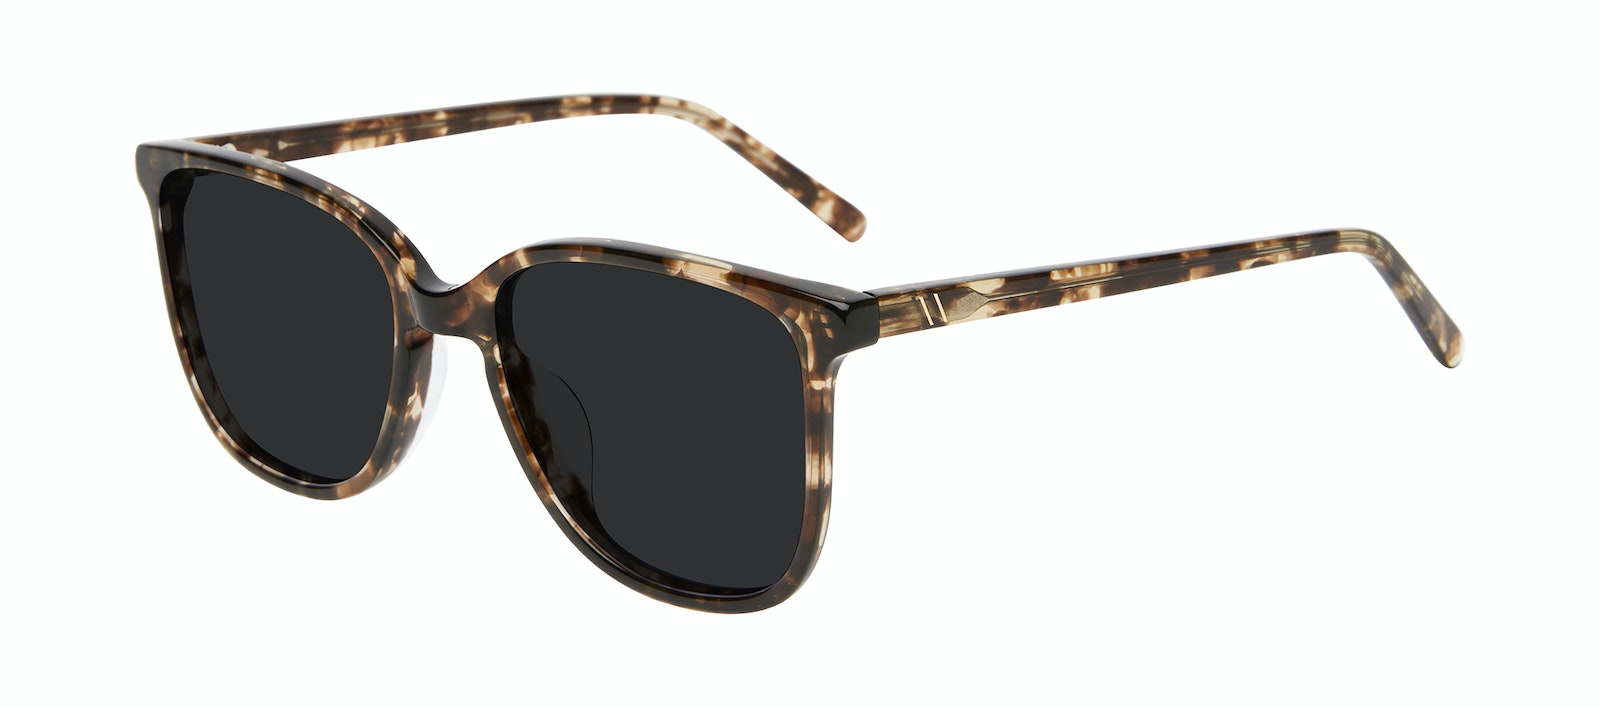 Affordable Fashion Glasses Square Sunglasses Women Lead Leopard Tilt